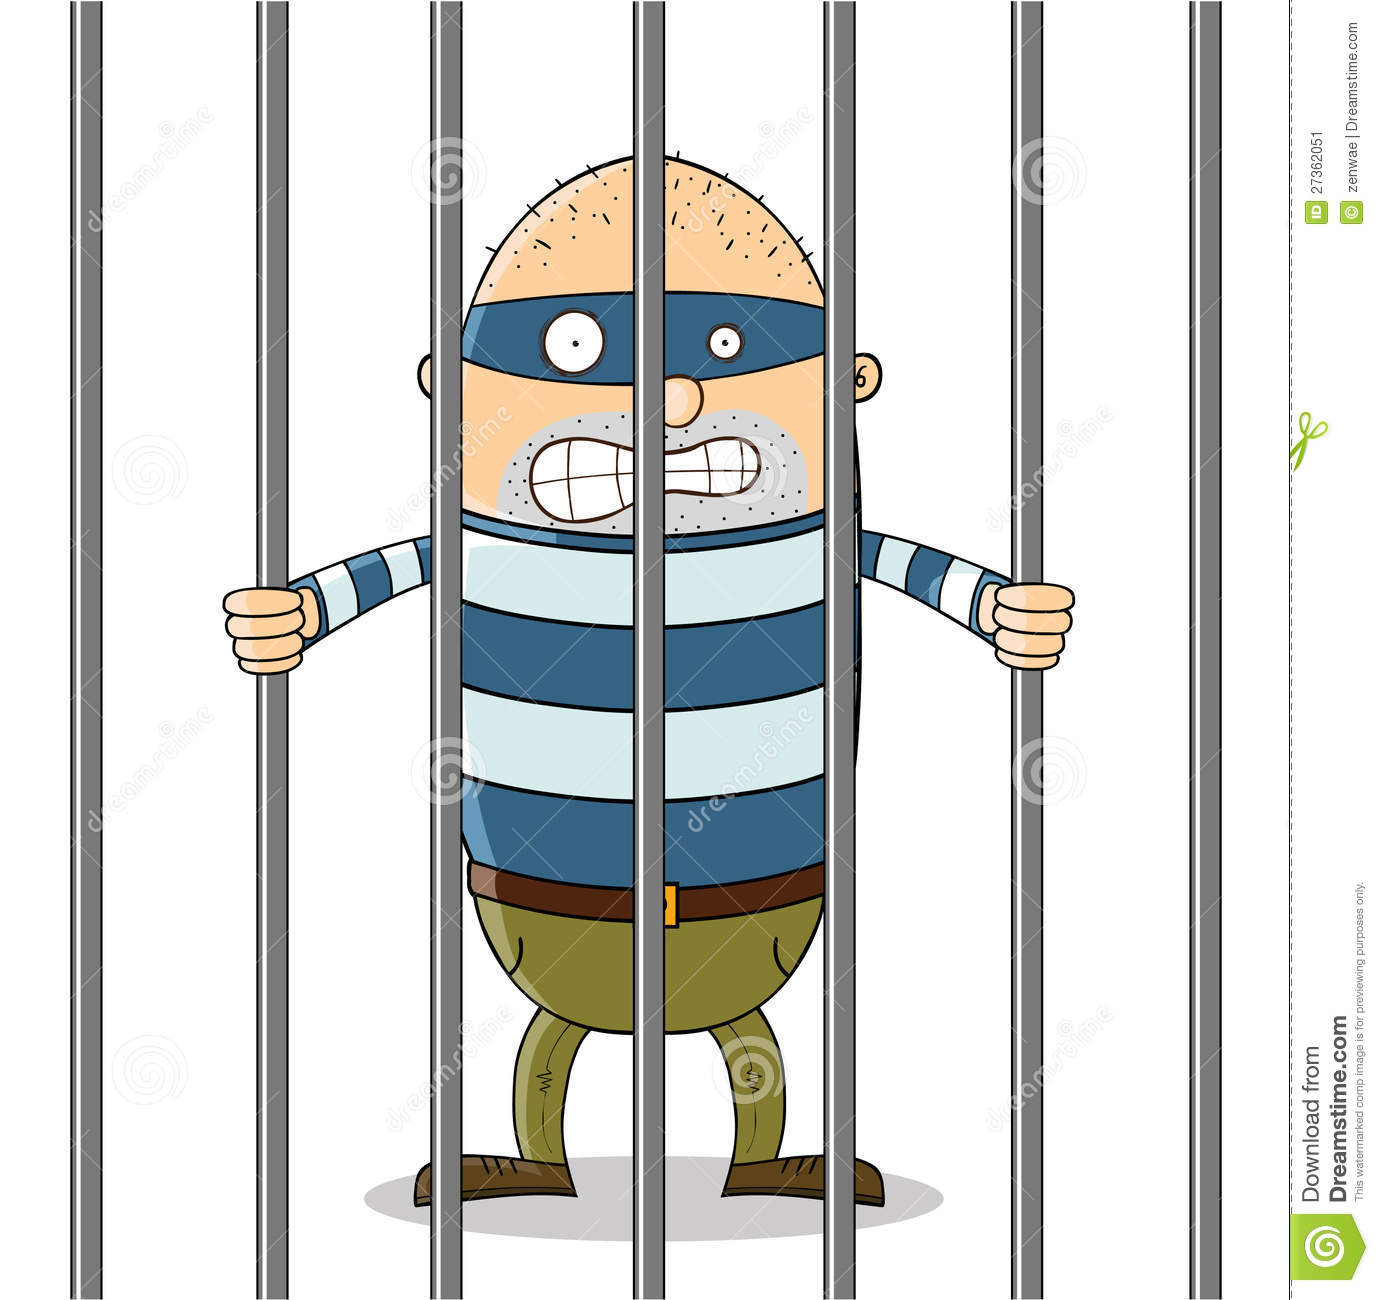 Bad Guy In Jail Stock Image - Image: 27362051: www.dreamstime.com/stock-image-bad-guy-jail-image27362051